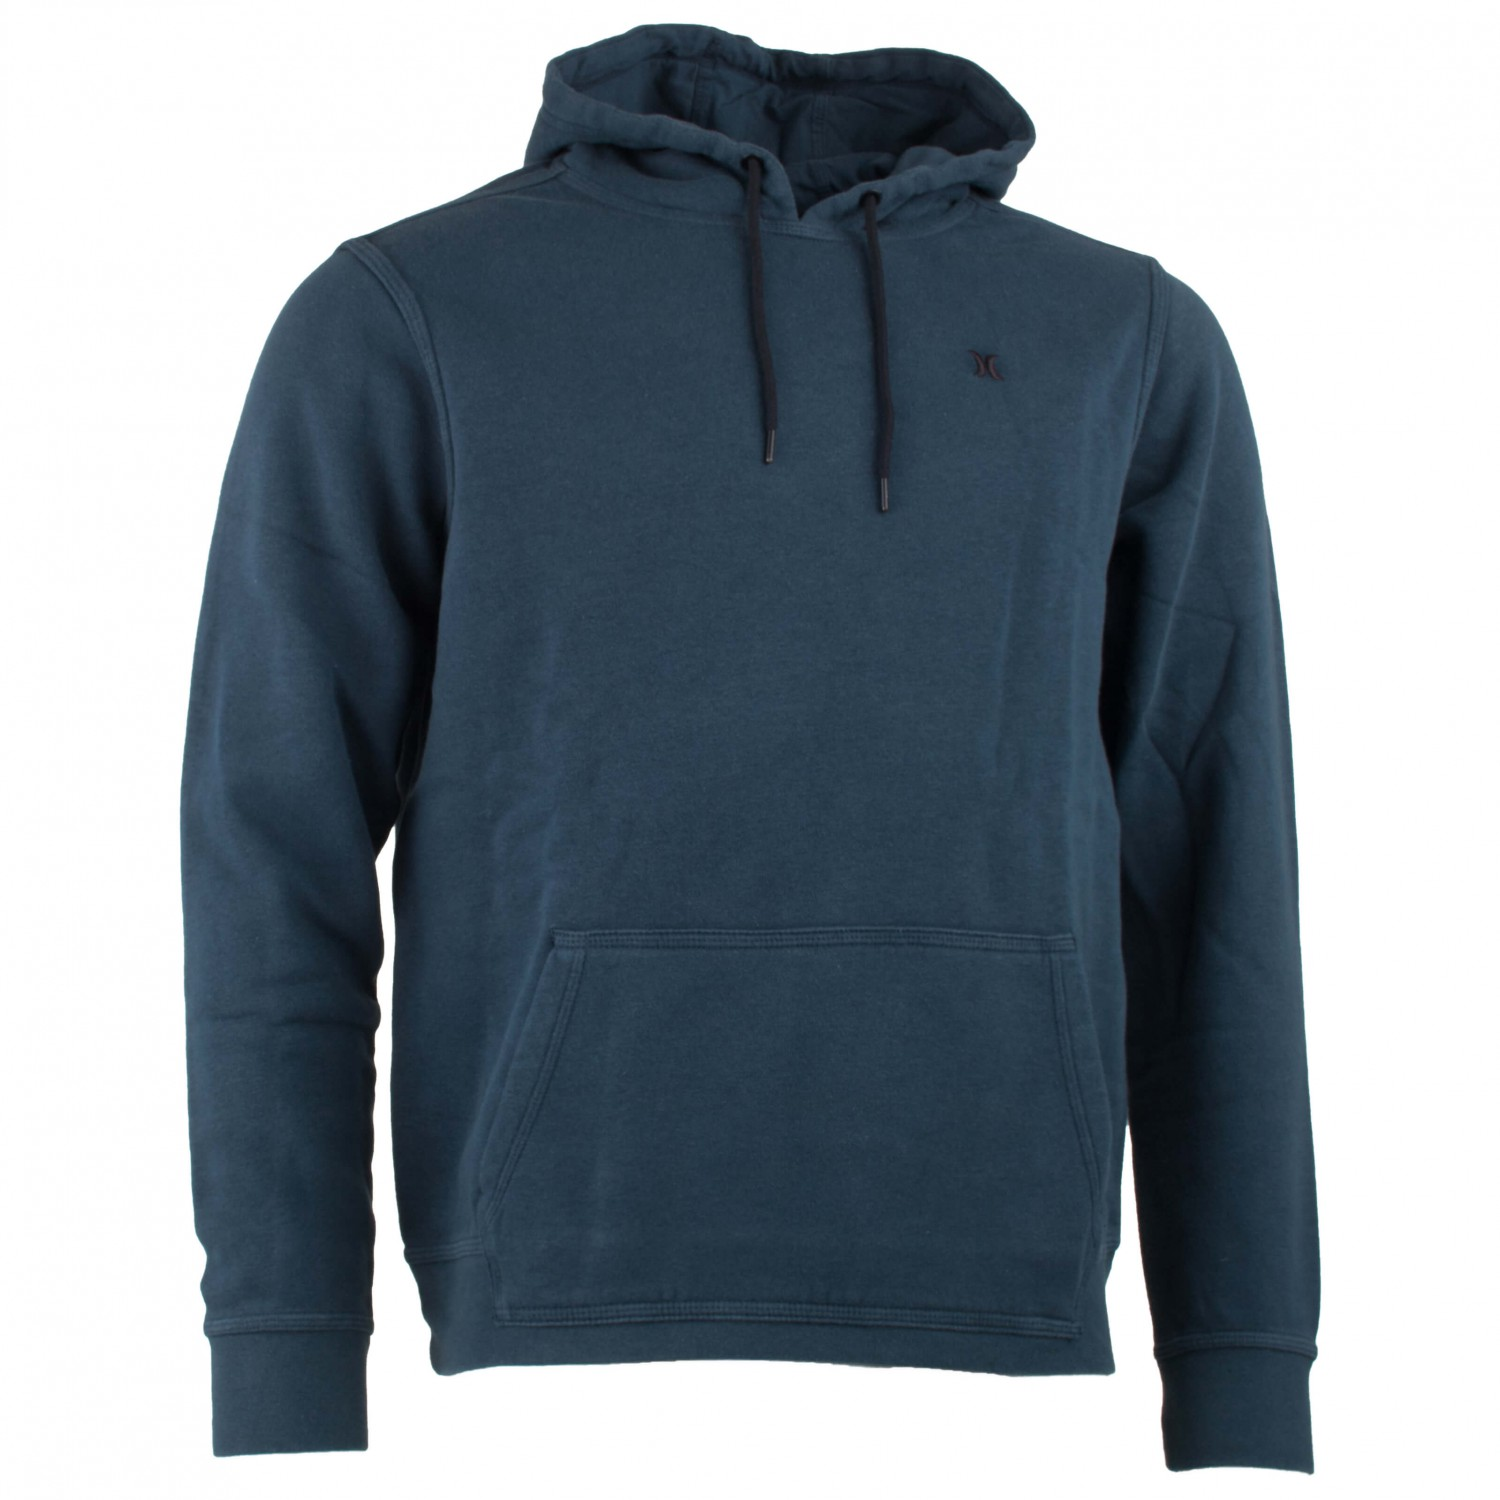 HANES® & GILDAN® JERZEES® CHAMPION® SweatShirts Buy 1 Piece or WINTER SPECIALS JERZEES® Crews $ Pullover Hooded $ Zips $ GILDAN® Crews $ Pullover Hooded $ Zips $ HANES® Crews $ Pullover Hooded $ Zips $ PLEASE EMAIL US AT SweatShirtStore@al9mg7p1yos.gq or call